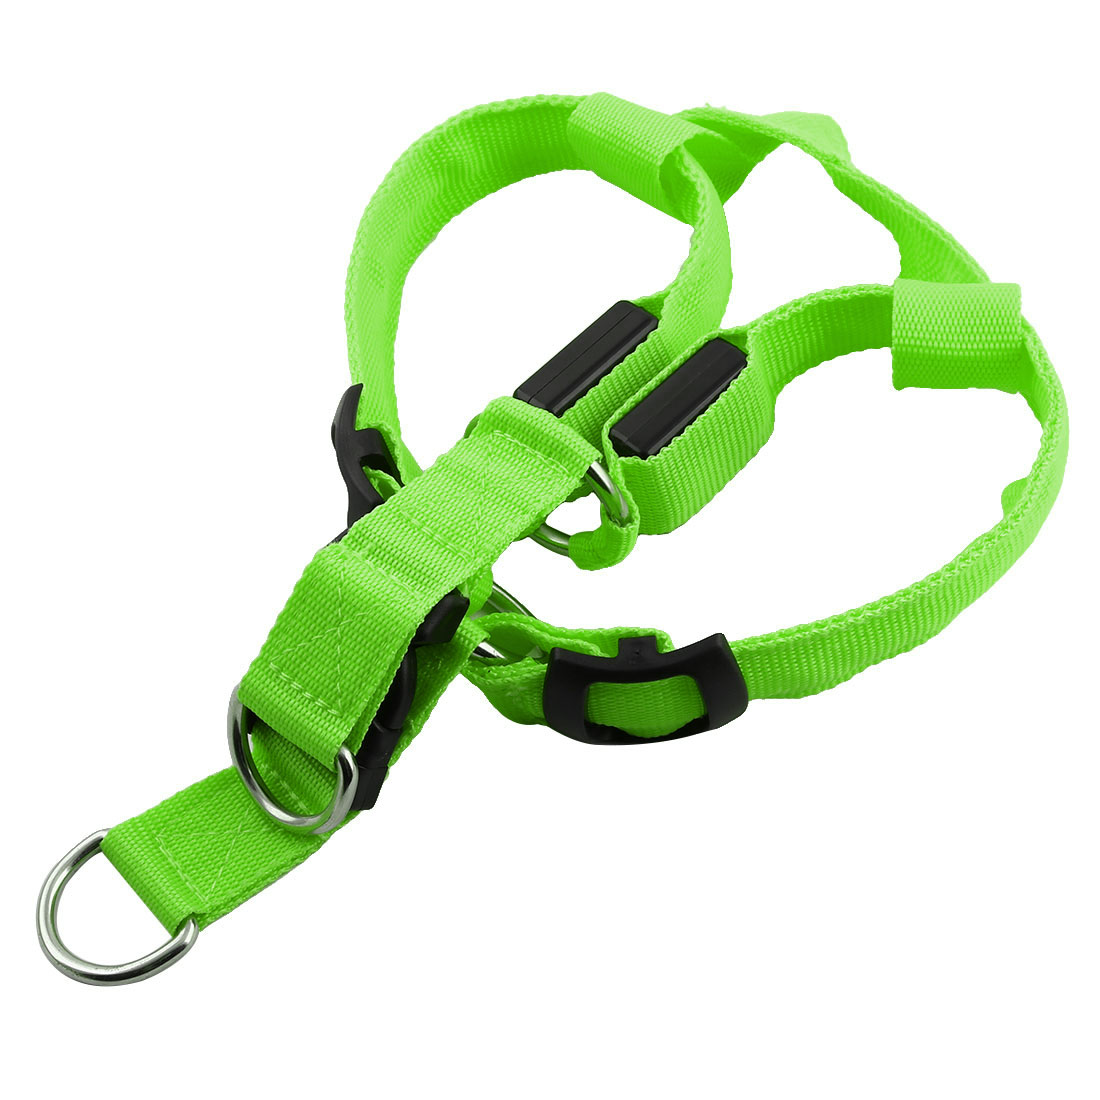 Pet Dog Puppy Nylon LED Flashing Light Night Safety Adjustable Chest Strap Green